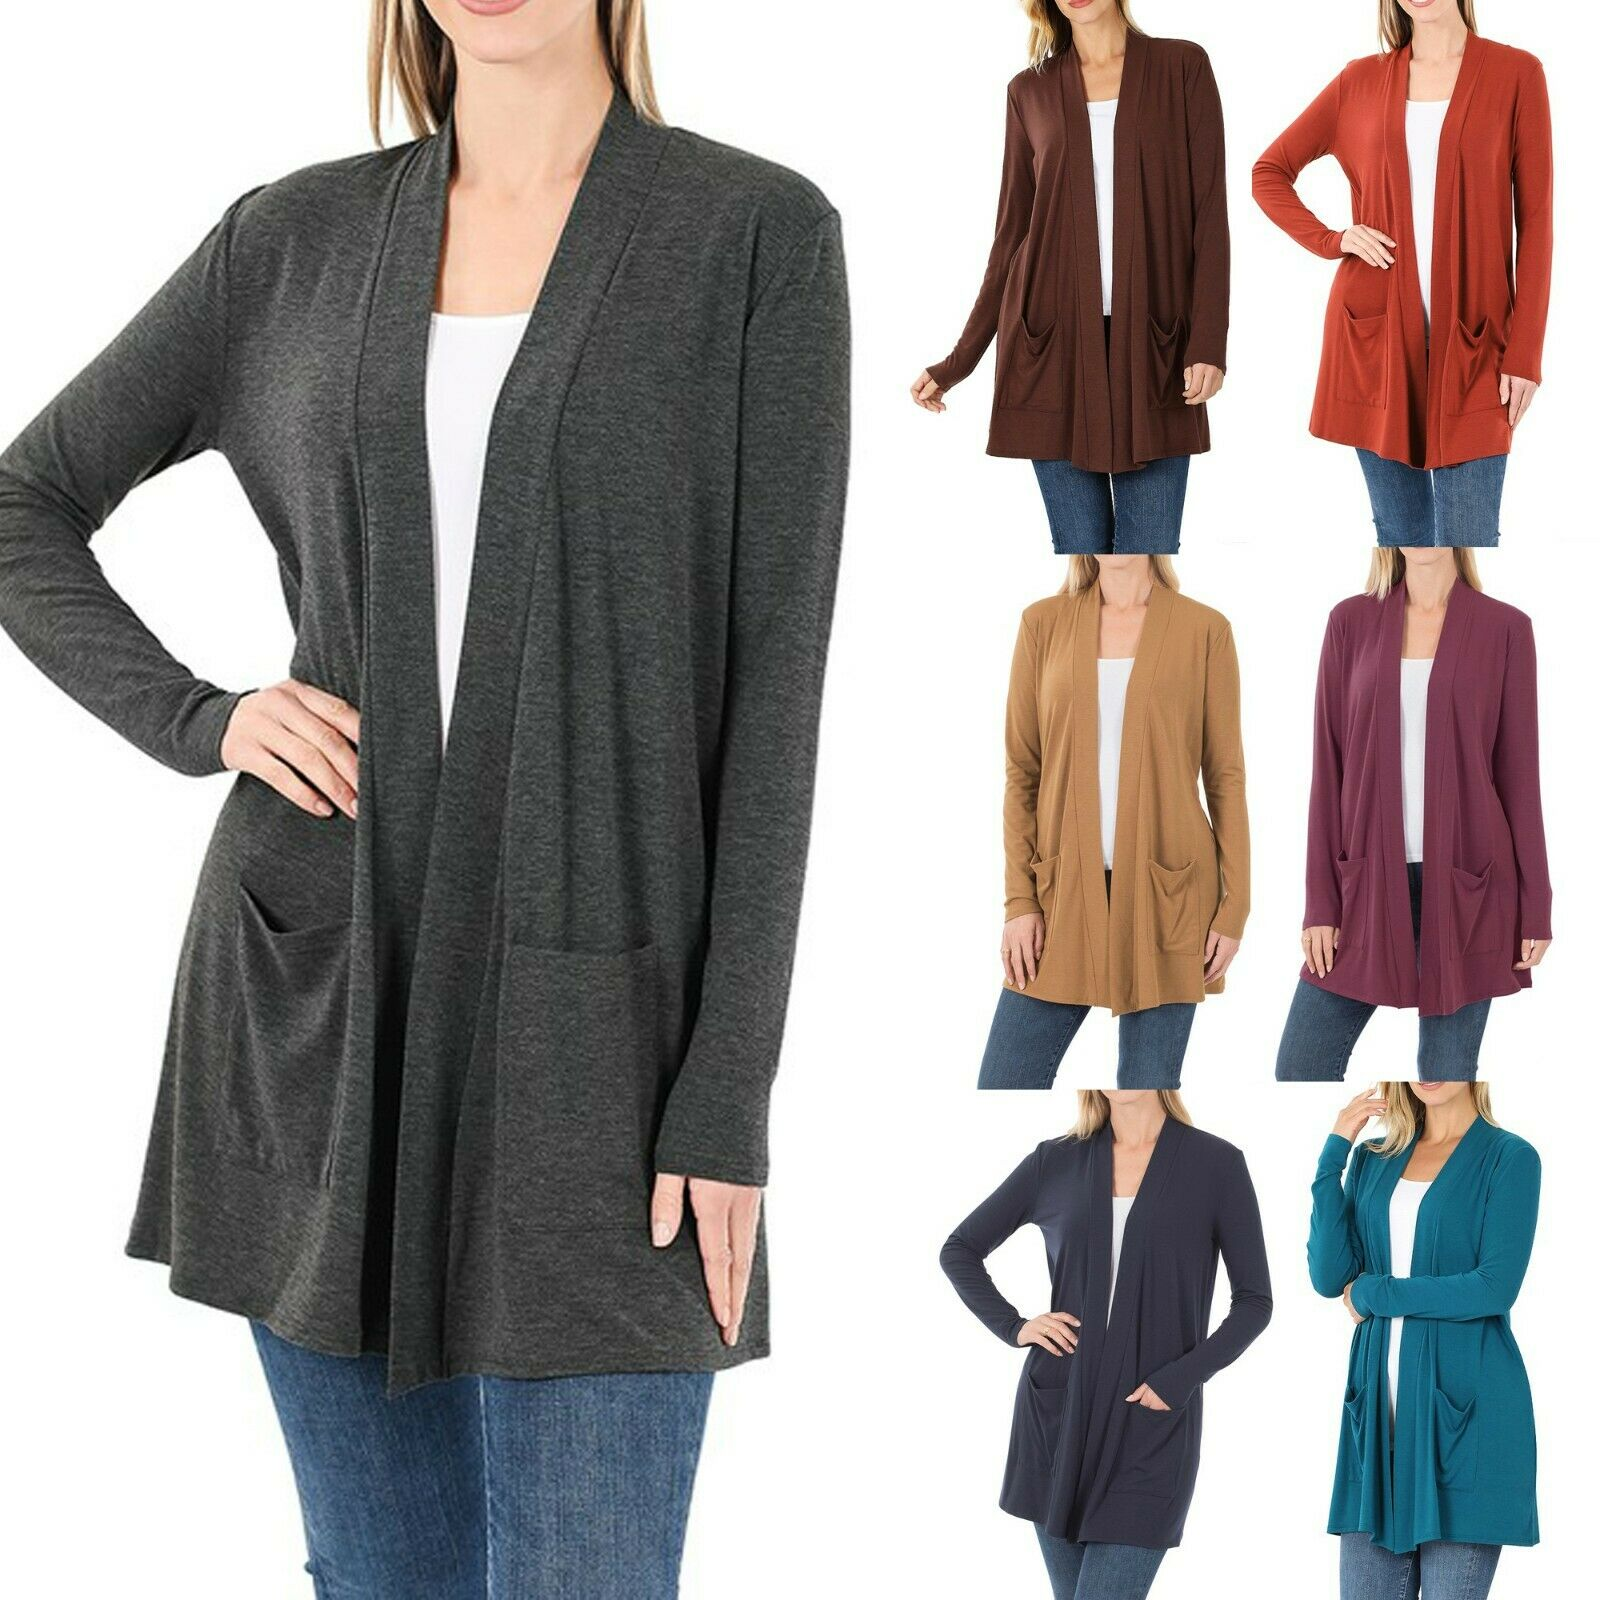 Womens Open Front Fly Away Cardigan Sweater Long Sleeve With Pockets Loose Drape Clothing, Shoes & Accessories